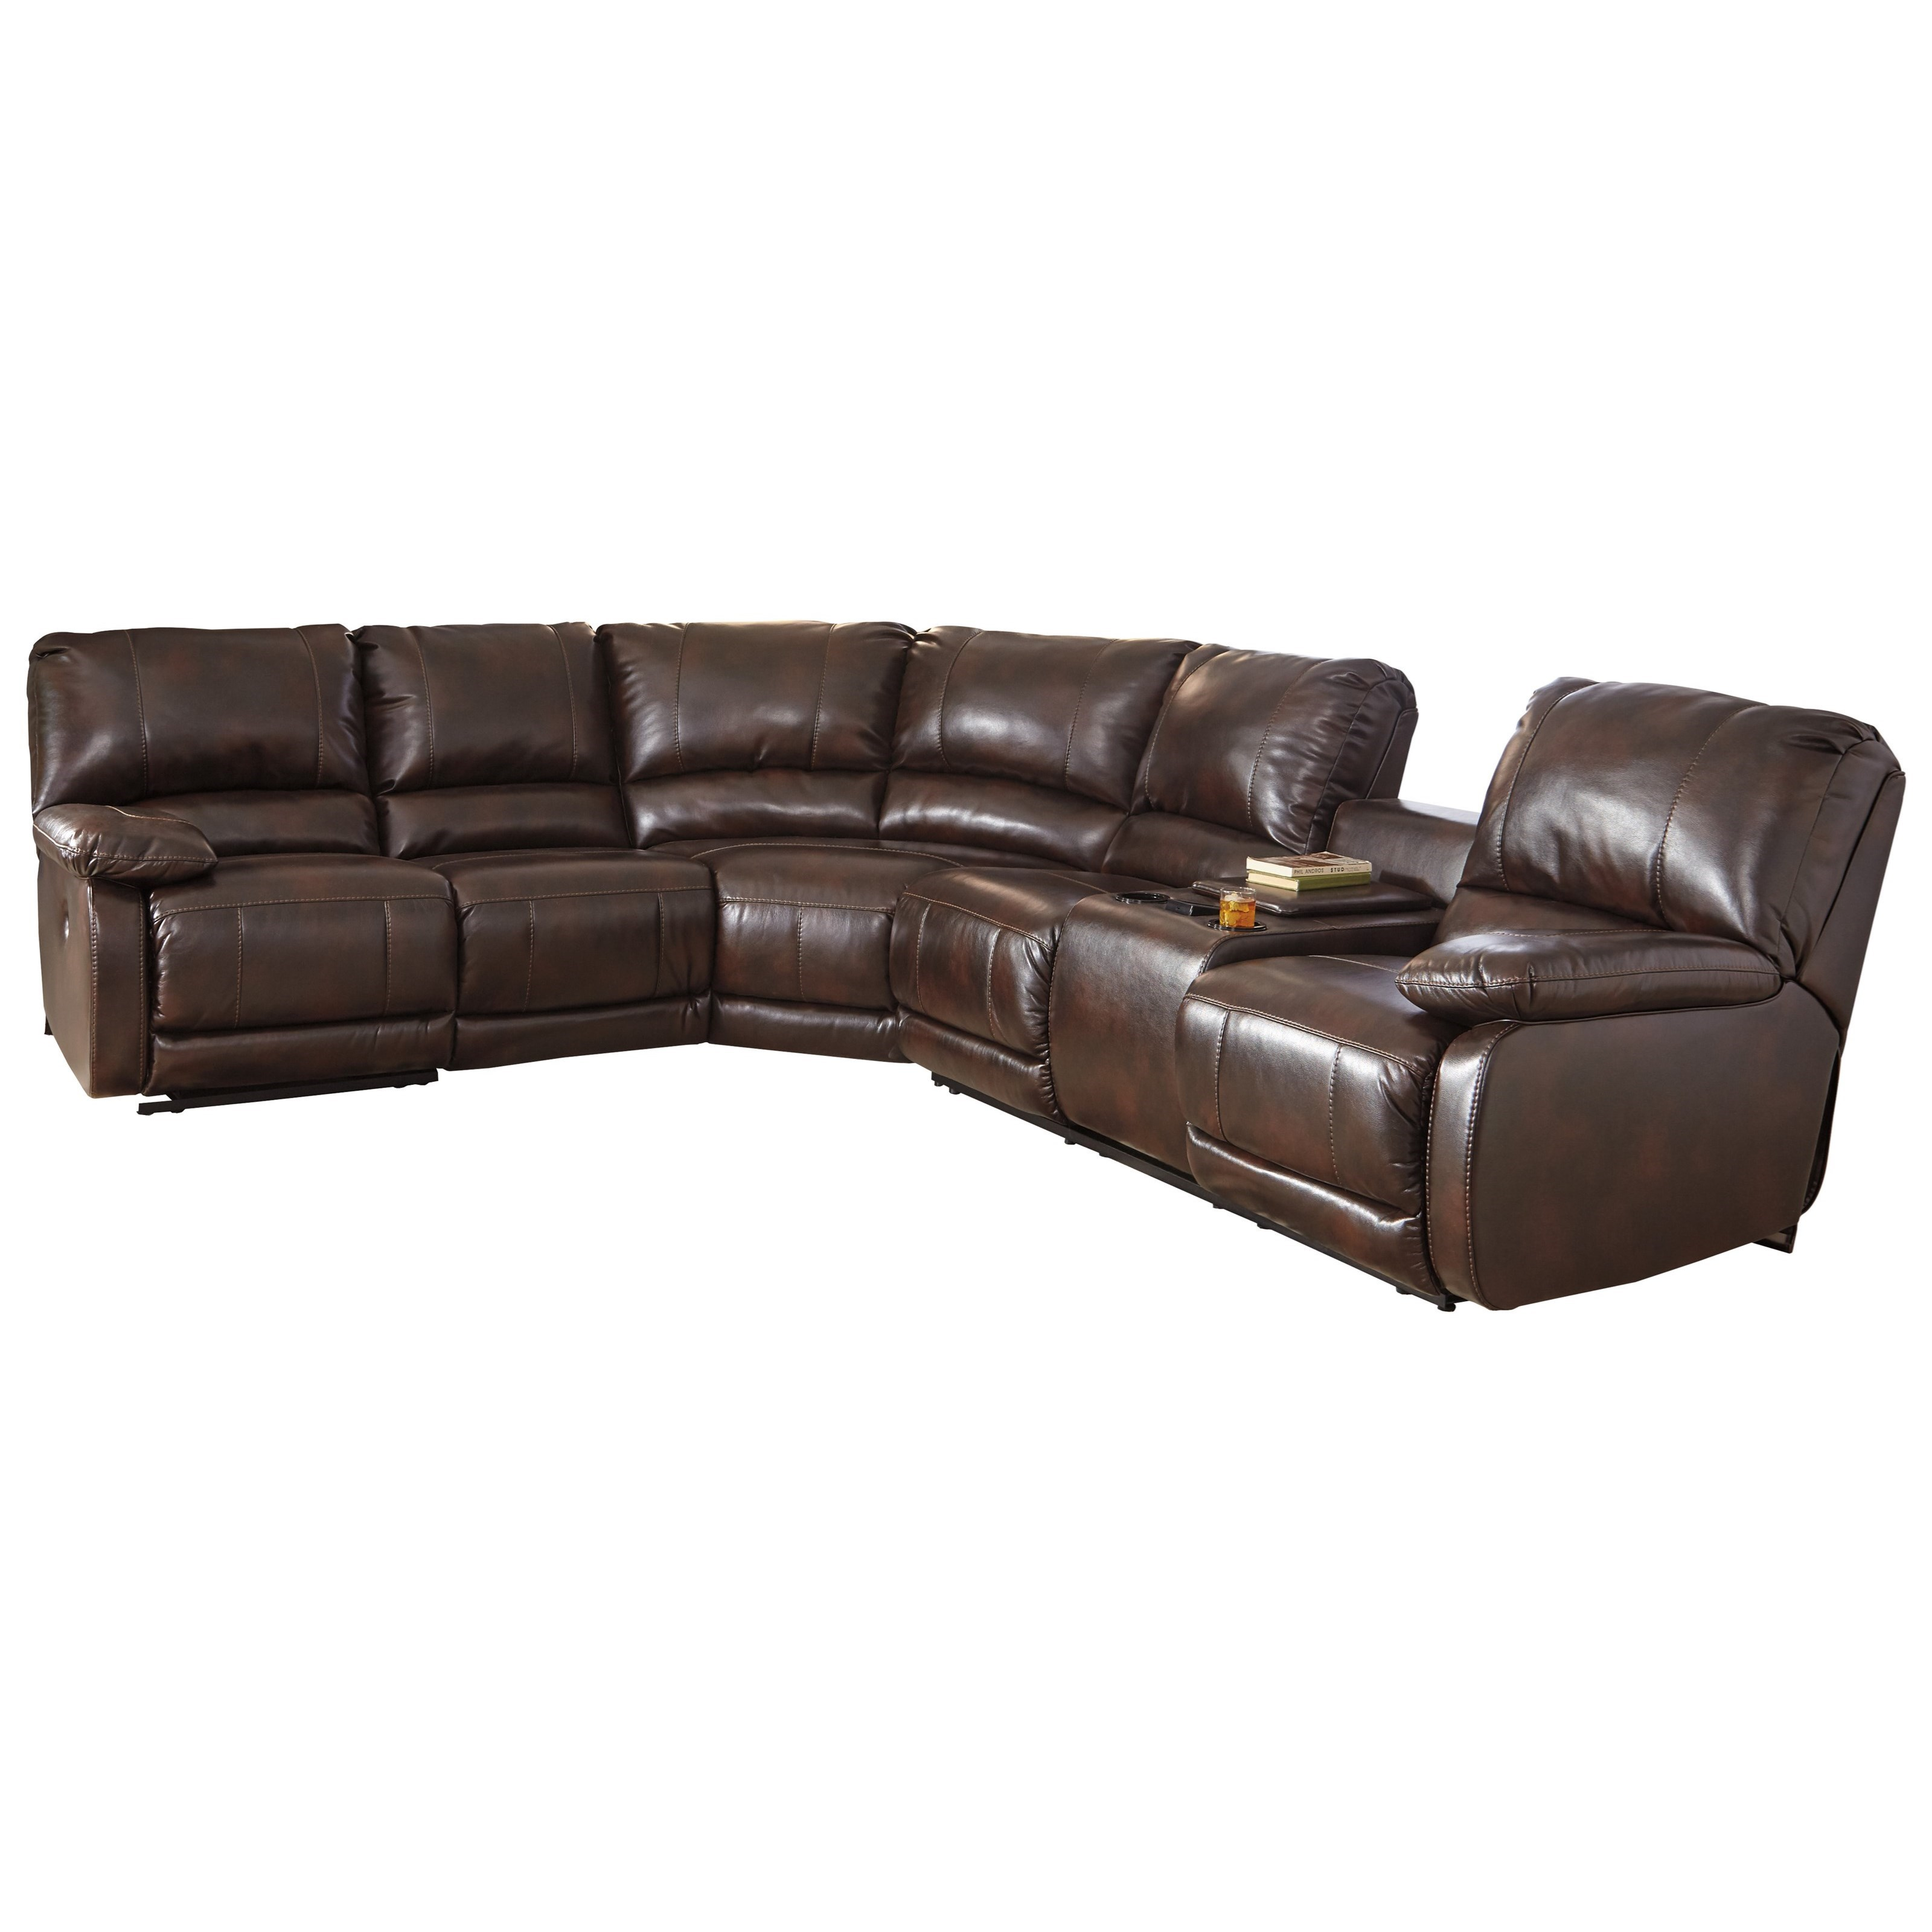 Signature Design by Ashley Hallettsville Power Reclining Sectional